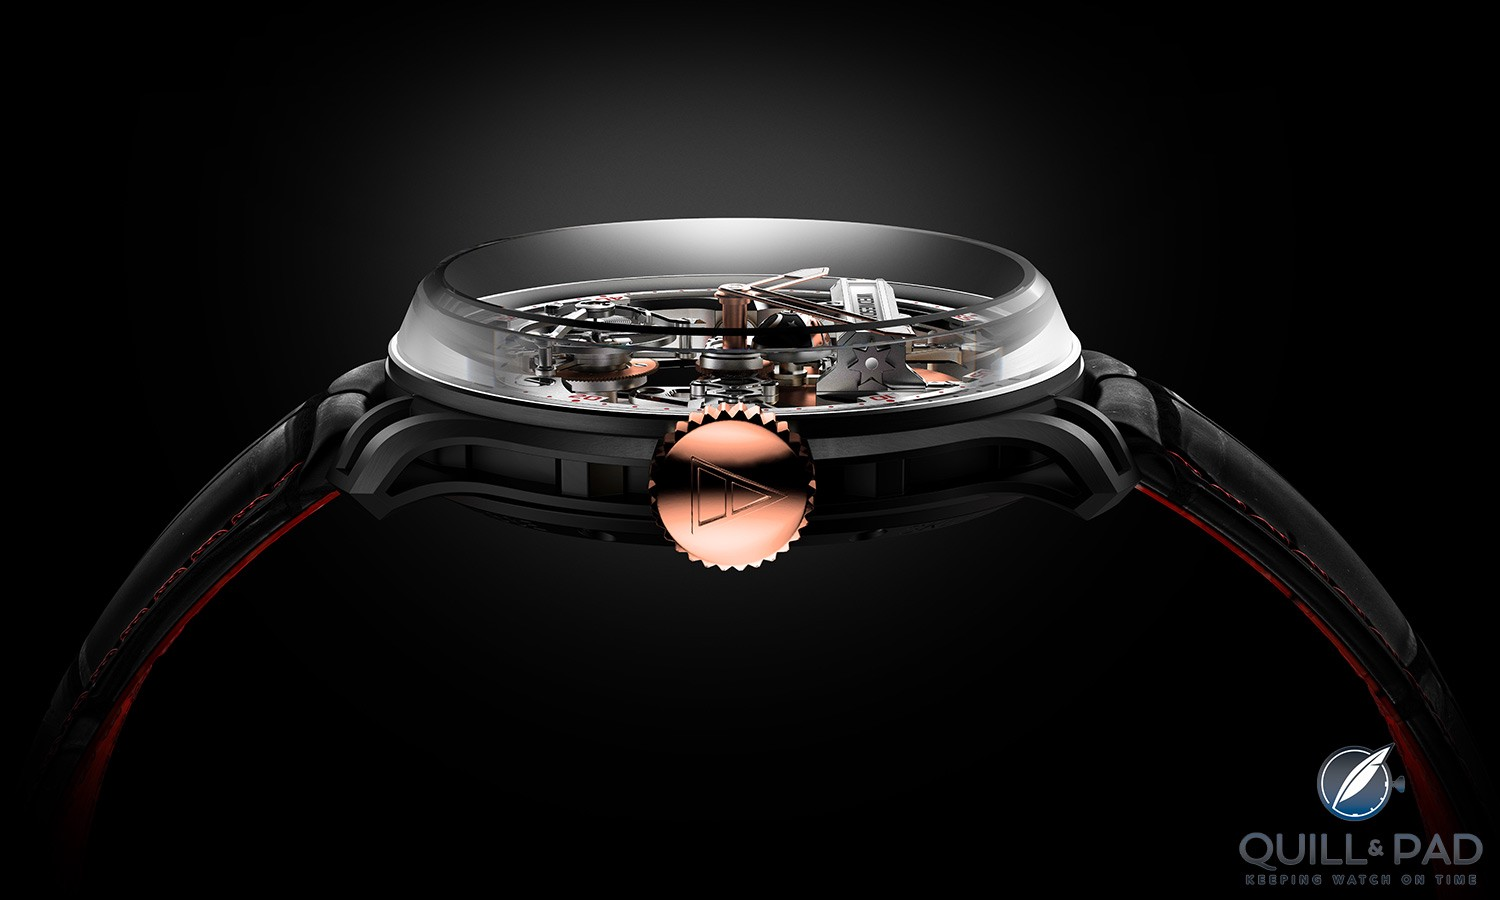 Profile view of the Franc Vila FVF Emotional Horology No 1 Superligero